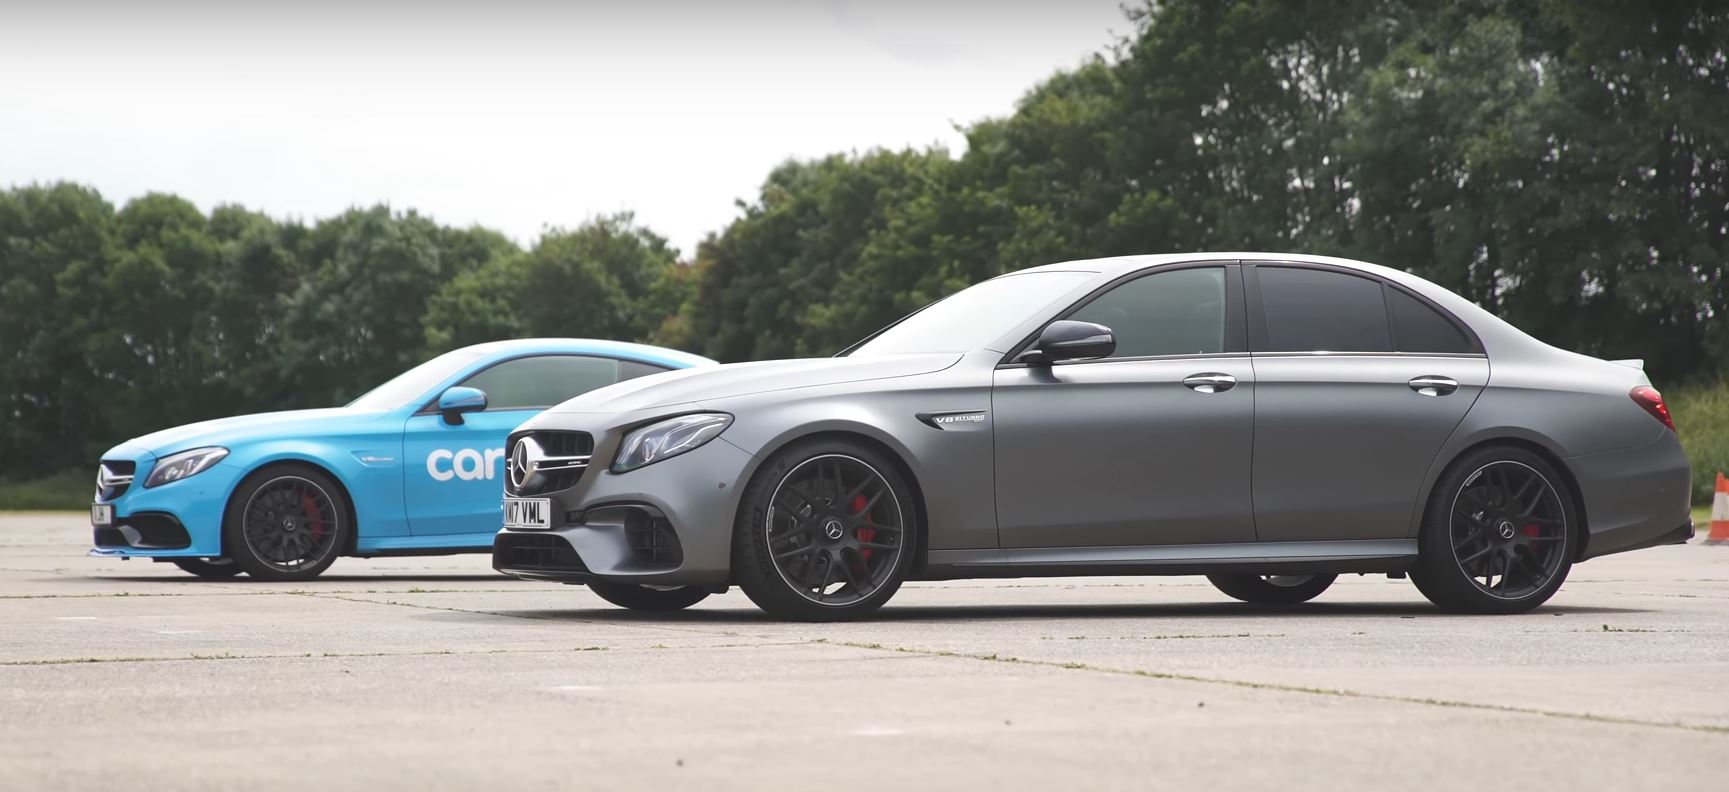 mercedes amg e63 s vs c63 s coupe drag race proves awd. Black Bedroom Furniture Sets. Home Design Ideas